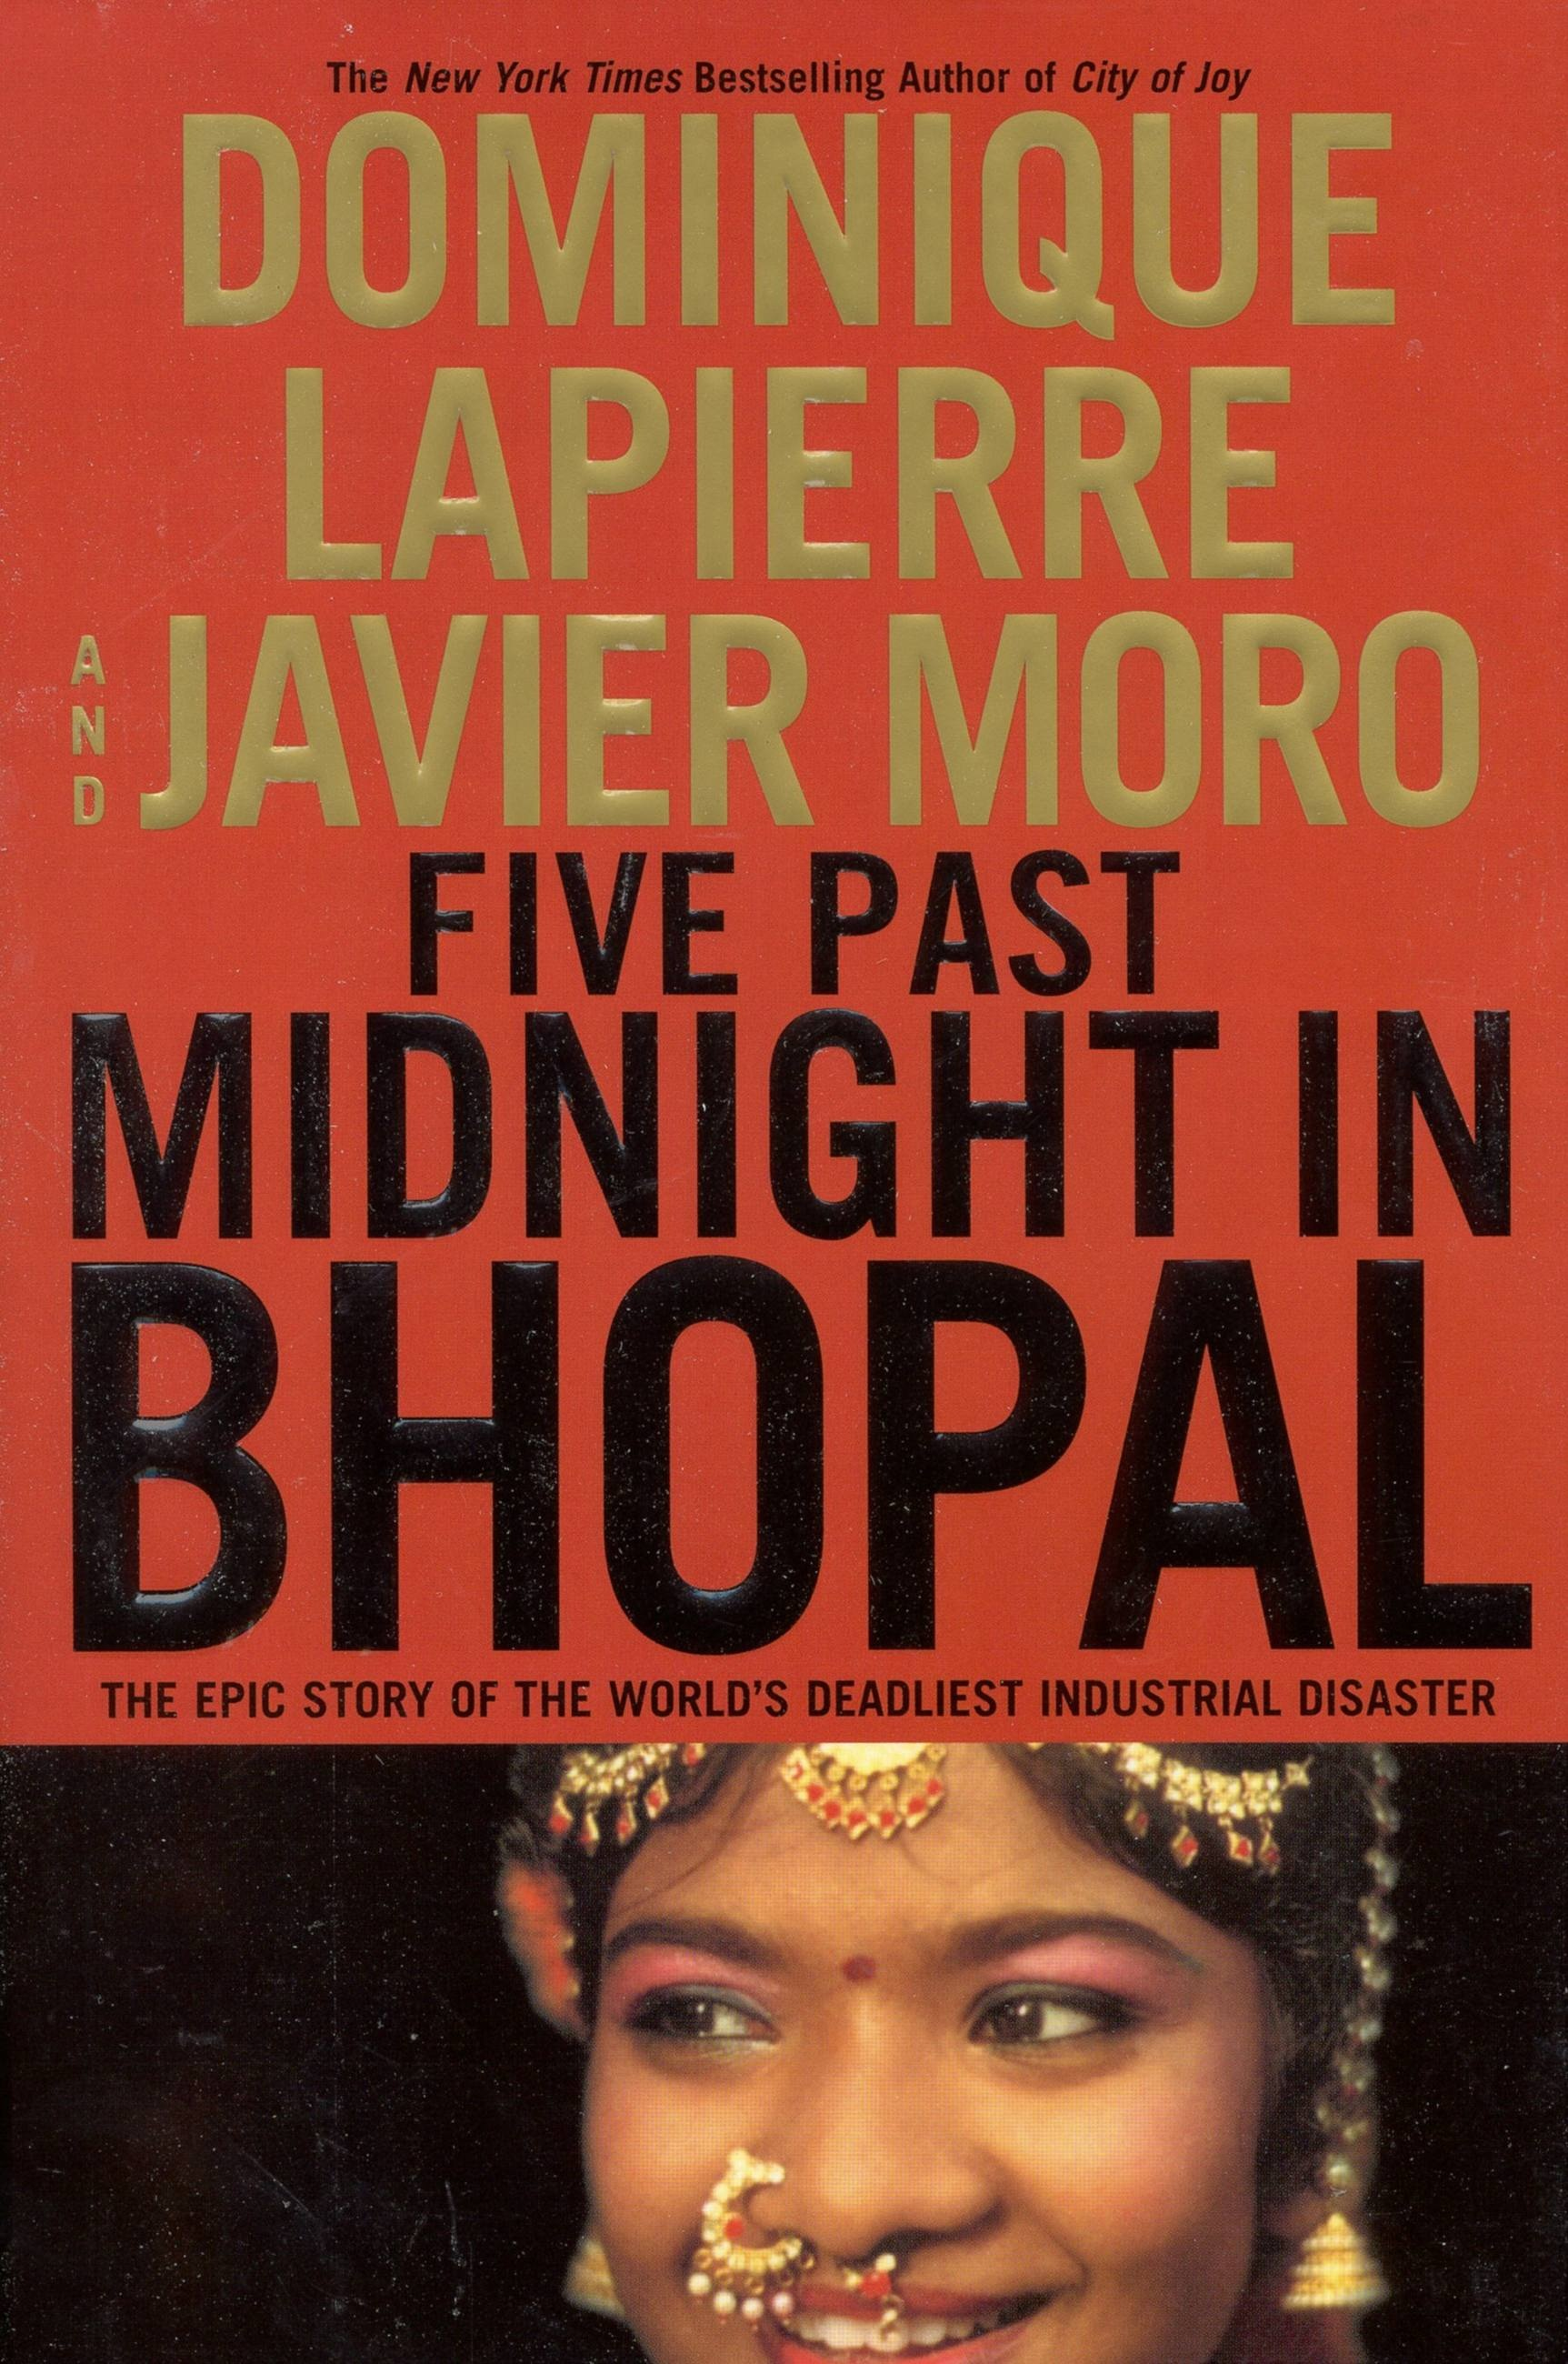 five past midnight in bhopal essay Buy a cheap copy of five past midnight in bhopal: the epic book by dominique lapierre on the night of december 3, 1984, a cyanide cloud drifted over the streets of bhopal, india, set loose by a leak in a nearby chemical plant when the deadly fog free shipping over $10.